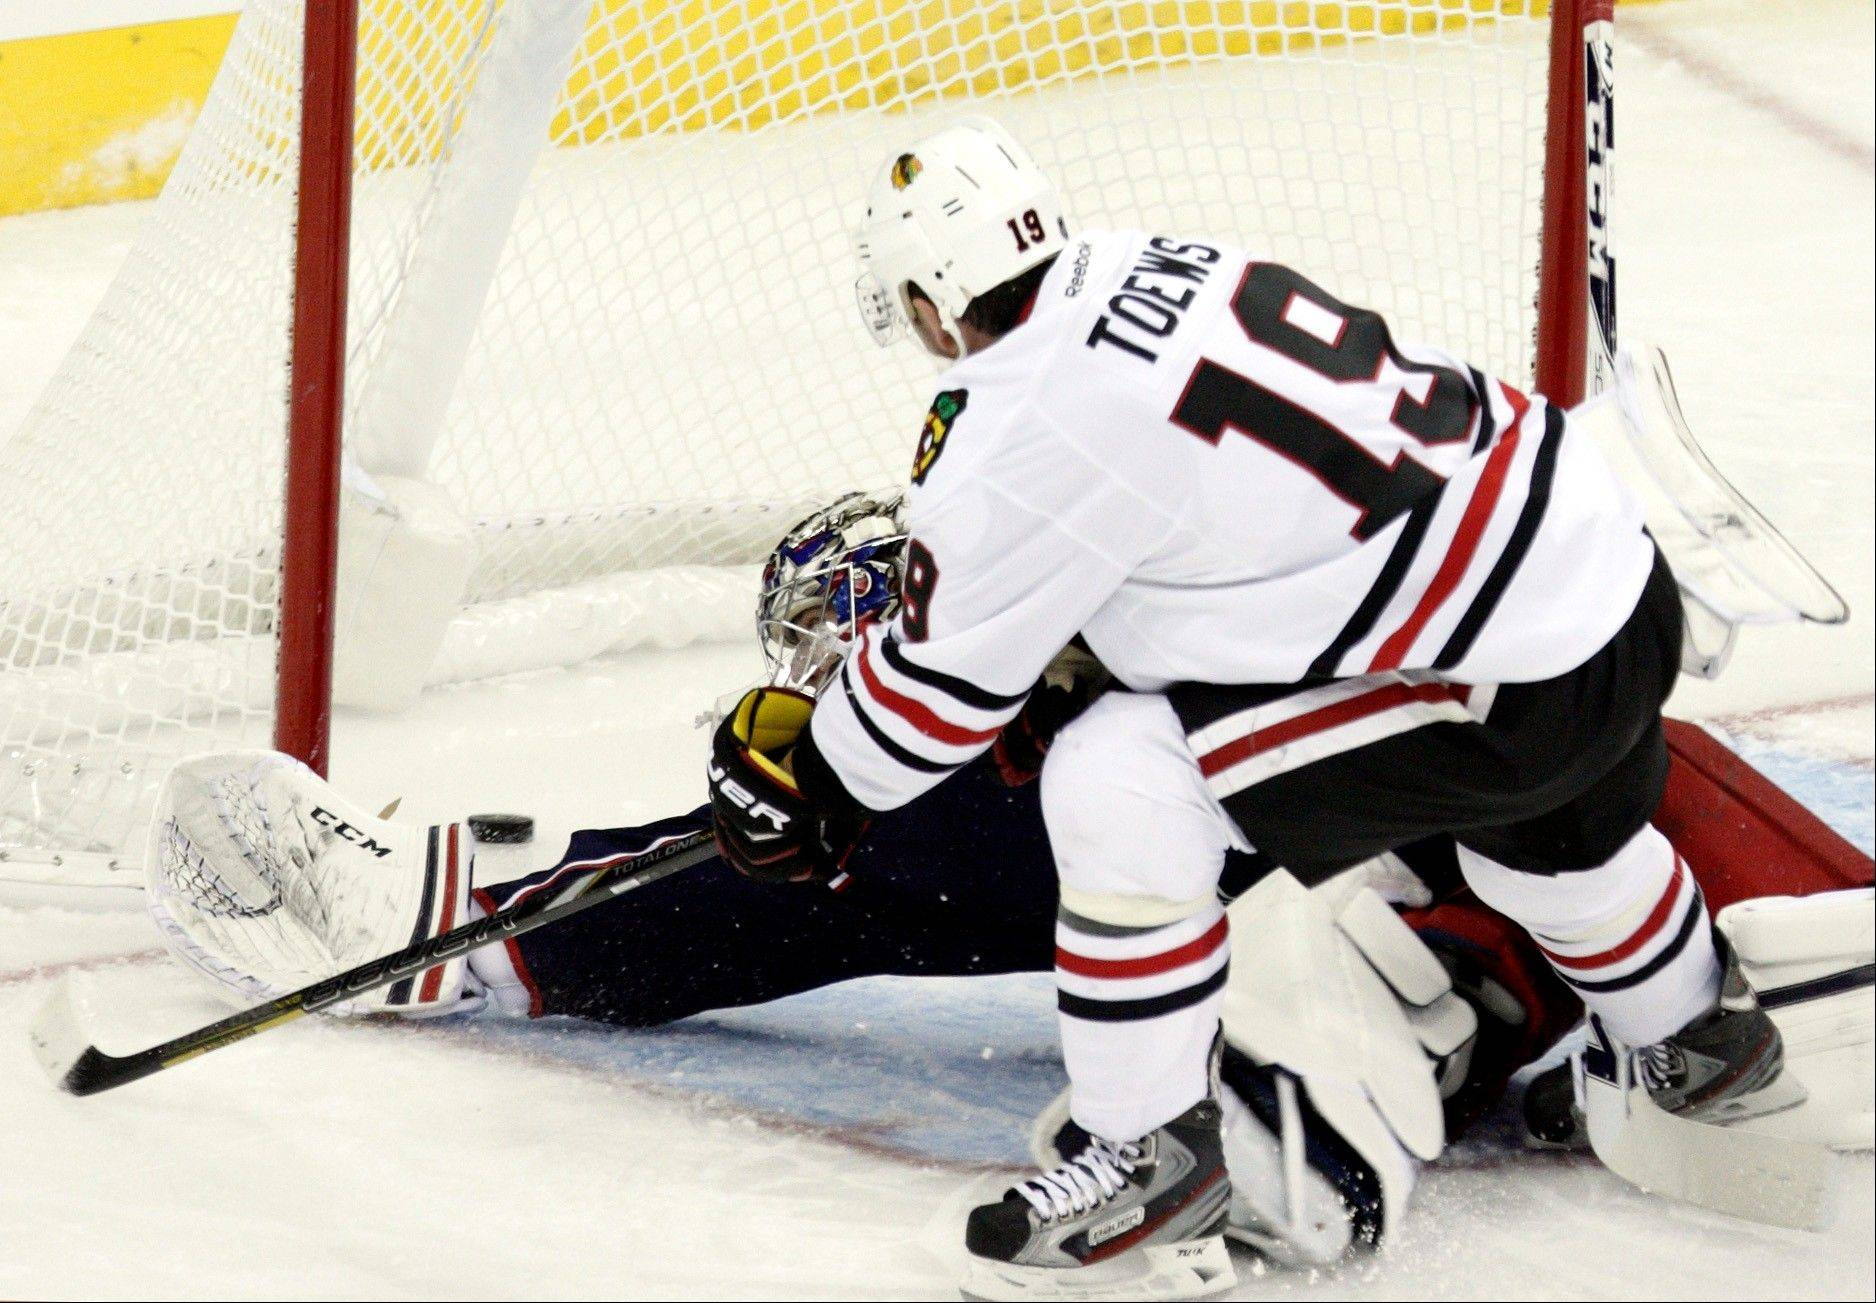 Chicago Blackhawks center Jonathan Toews, right, slips the puck past against Columbus Blue Jackets� Steve Mason in the third period of an NHL hockey game in Columbus, Ohio, Saturday, Jan. 26, 2013. Chicago won 3-2.